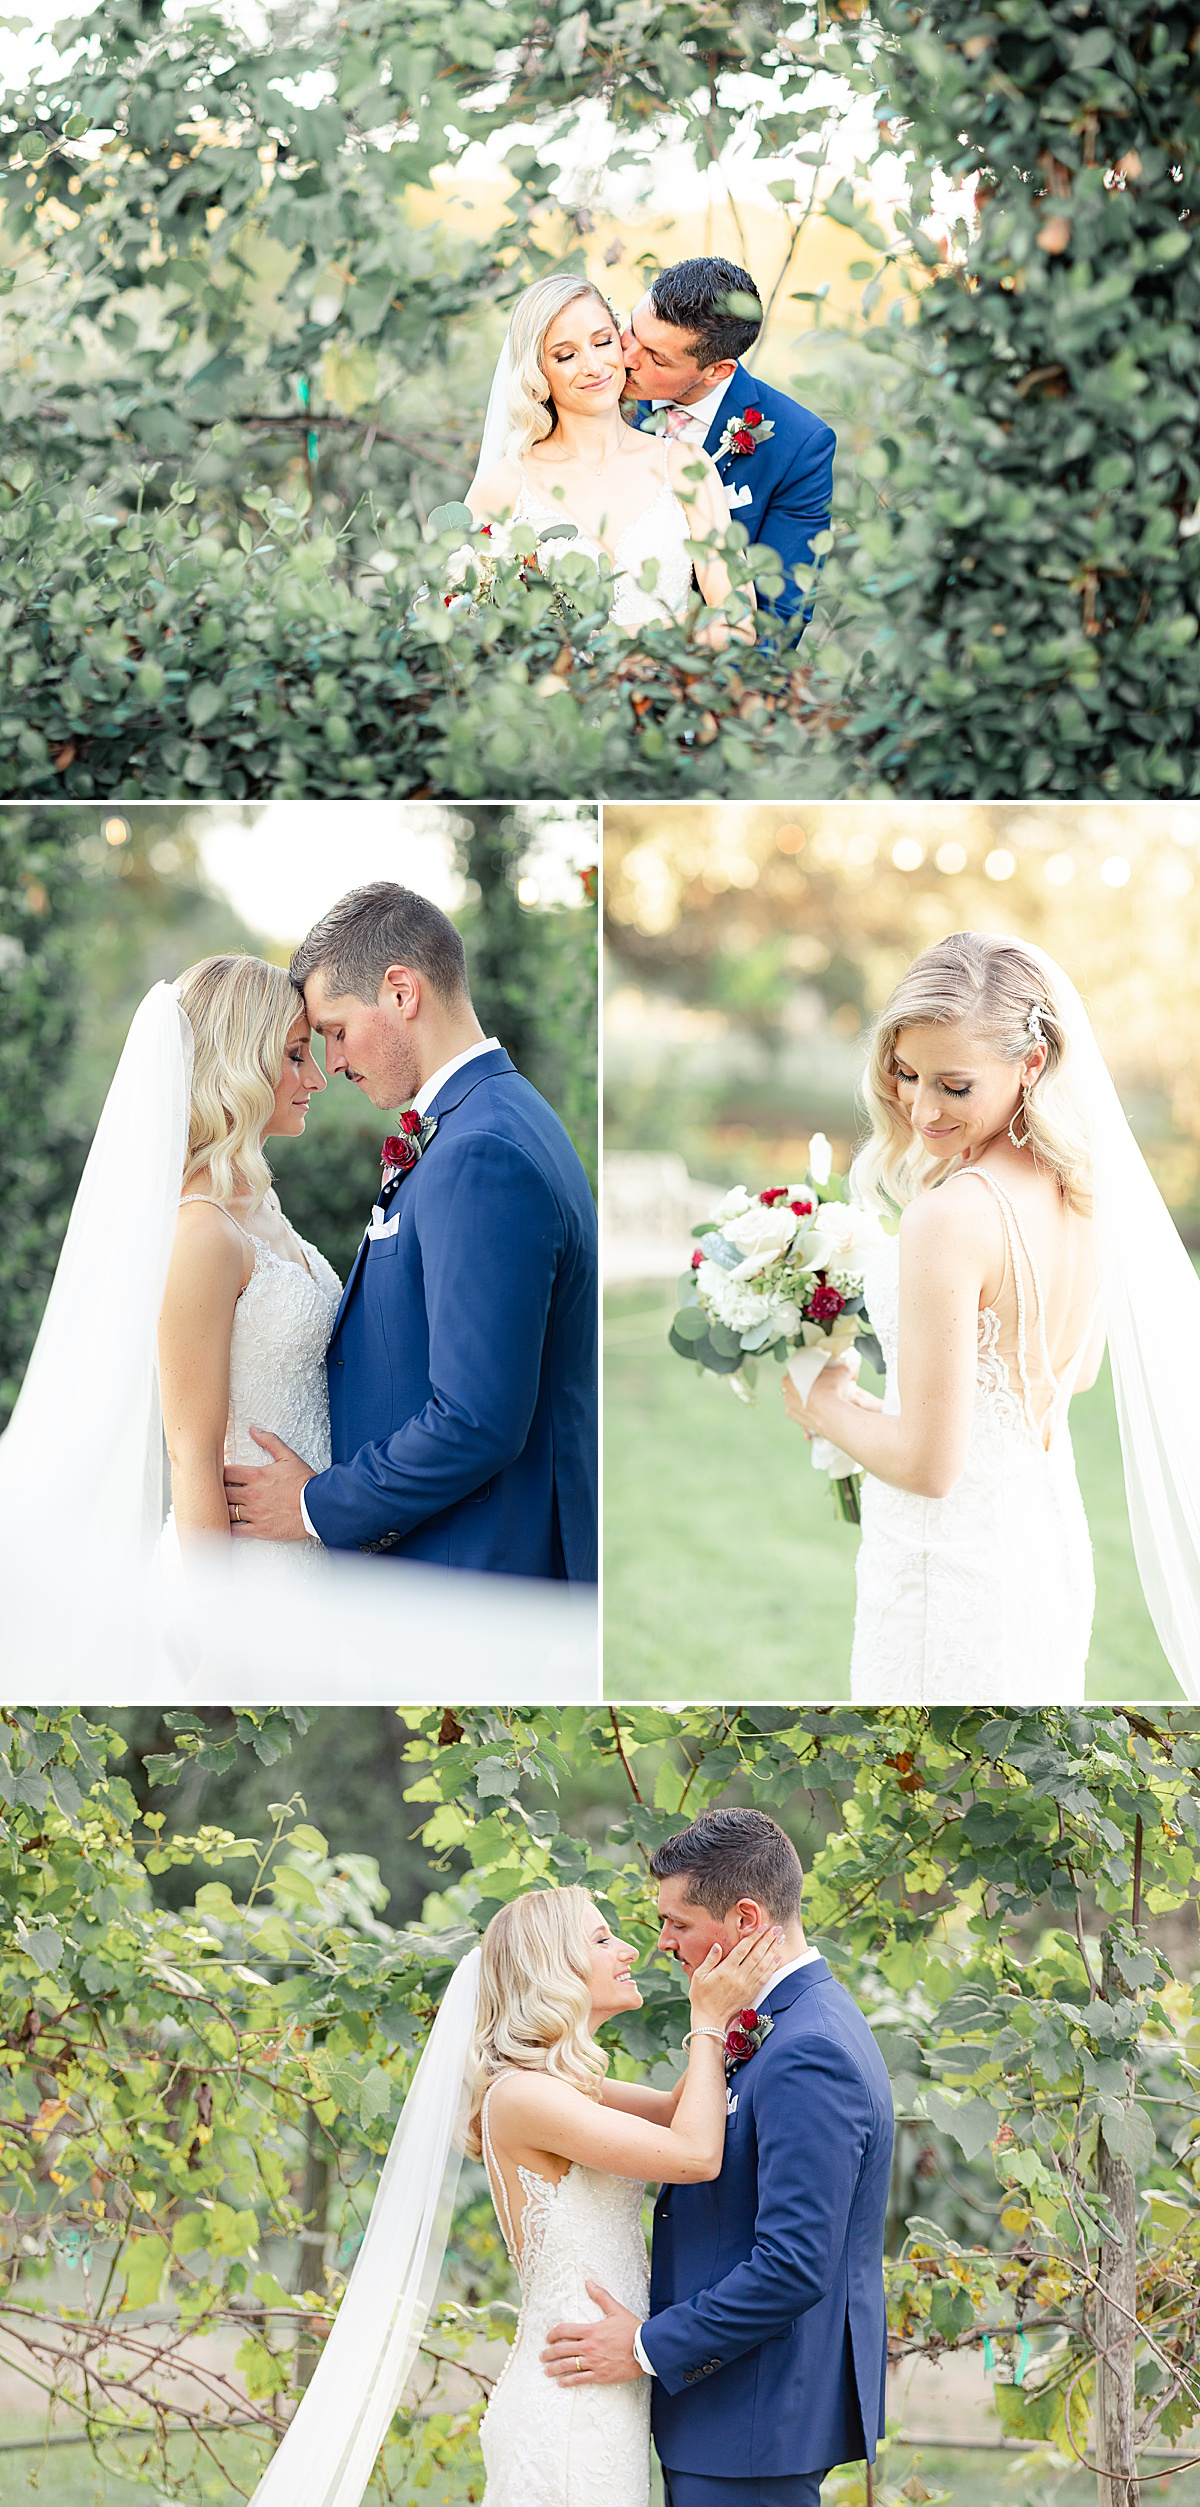 Navy-Burgundy-Blush-Texas-Wedding-Oak-Valley-Vineyards-New-Braunfels-Carly-Barton-Photography_0082.jpg